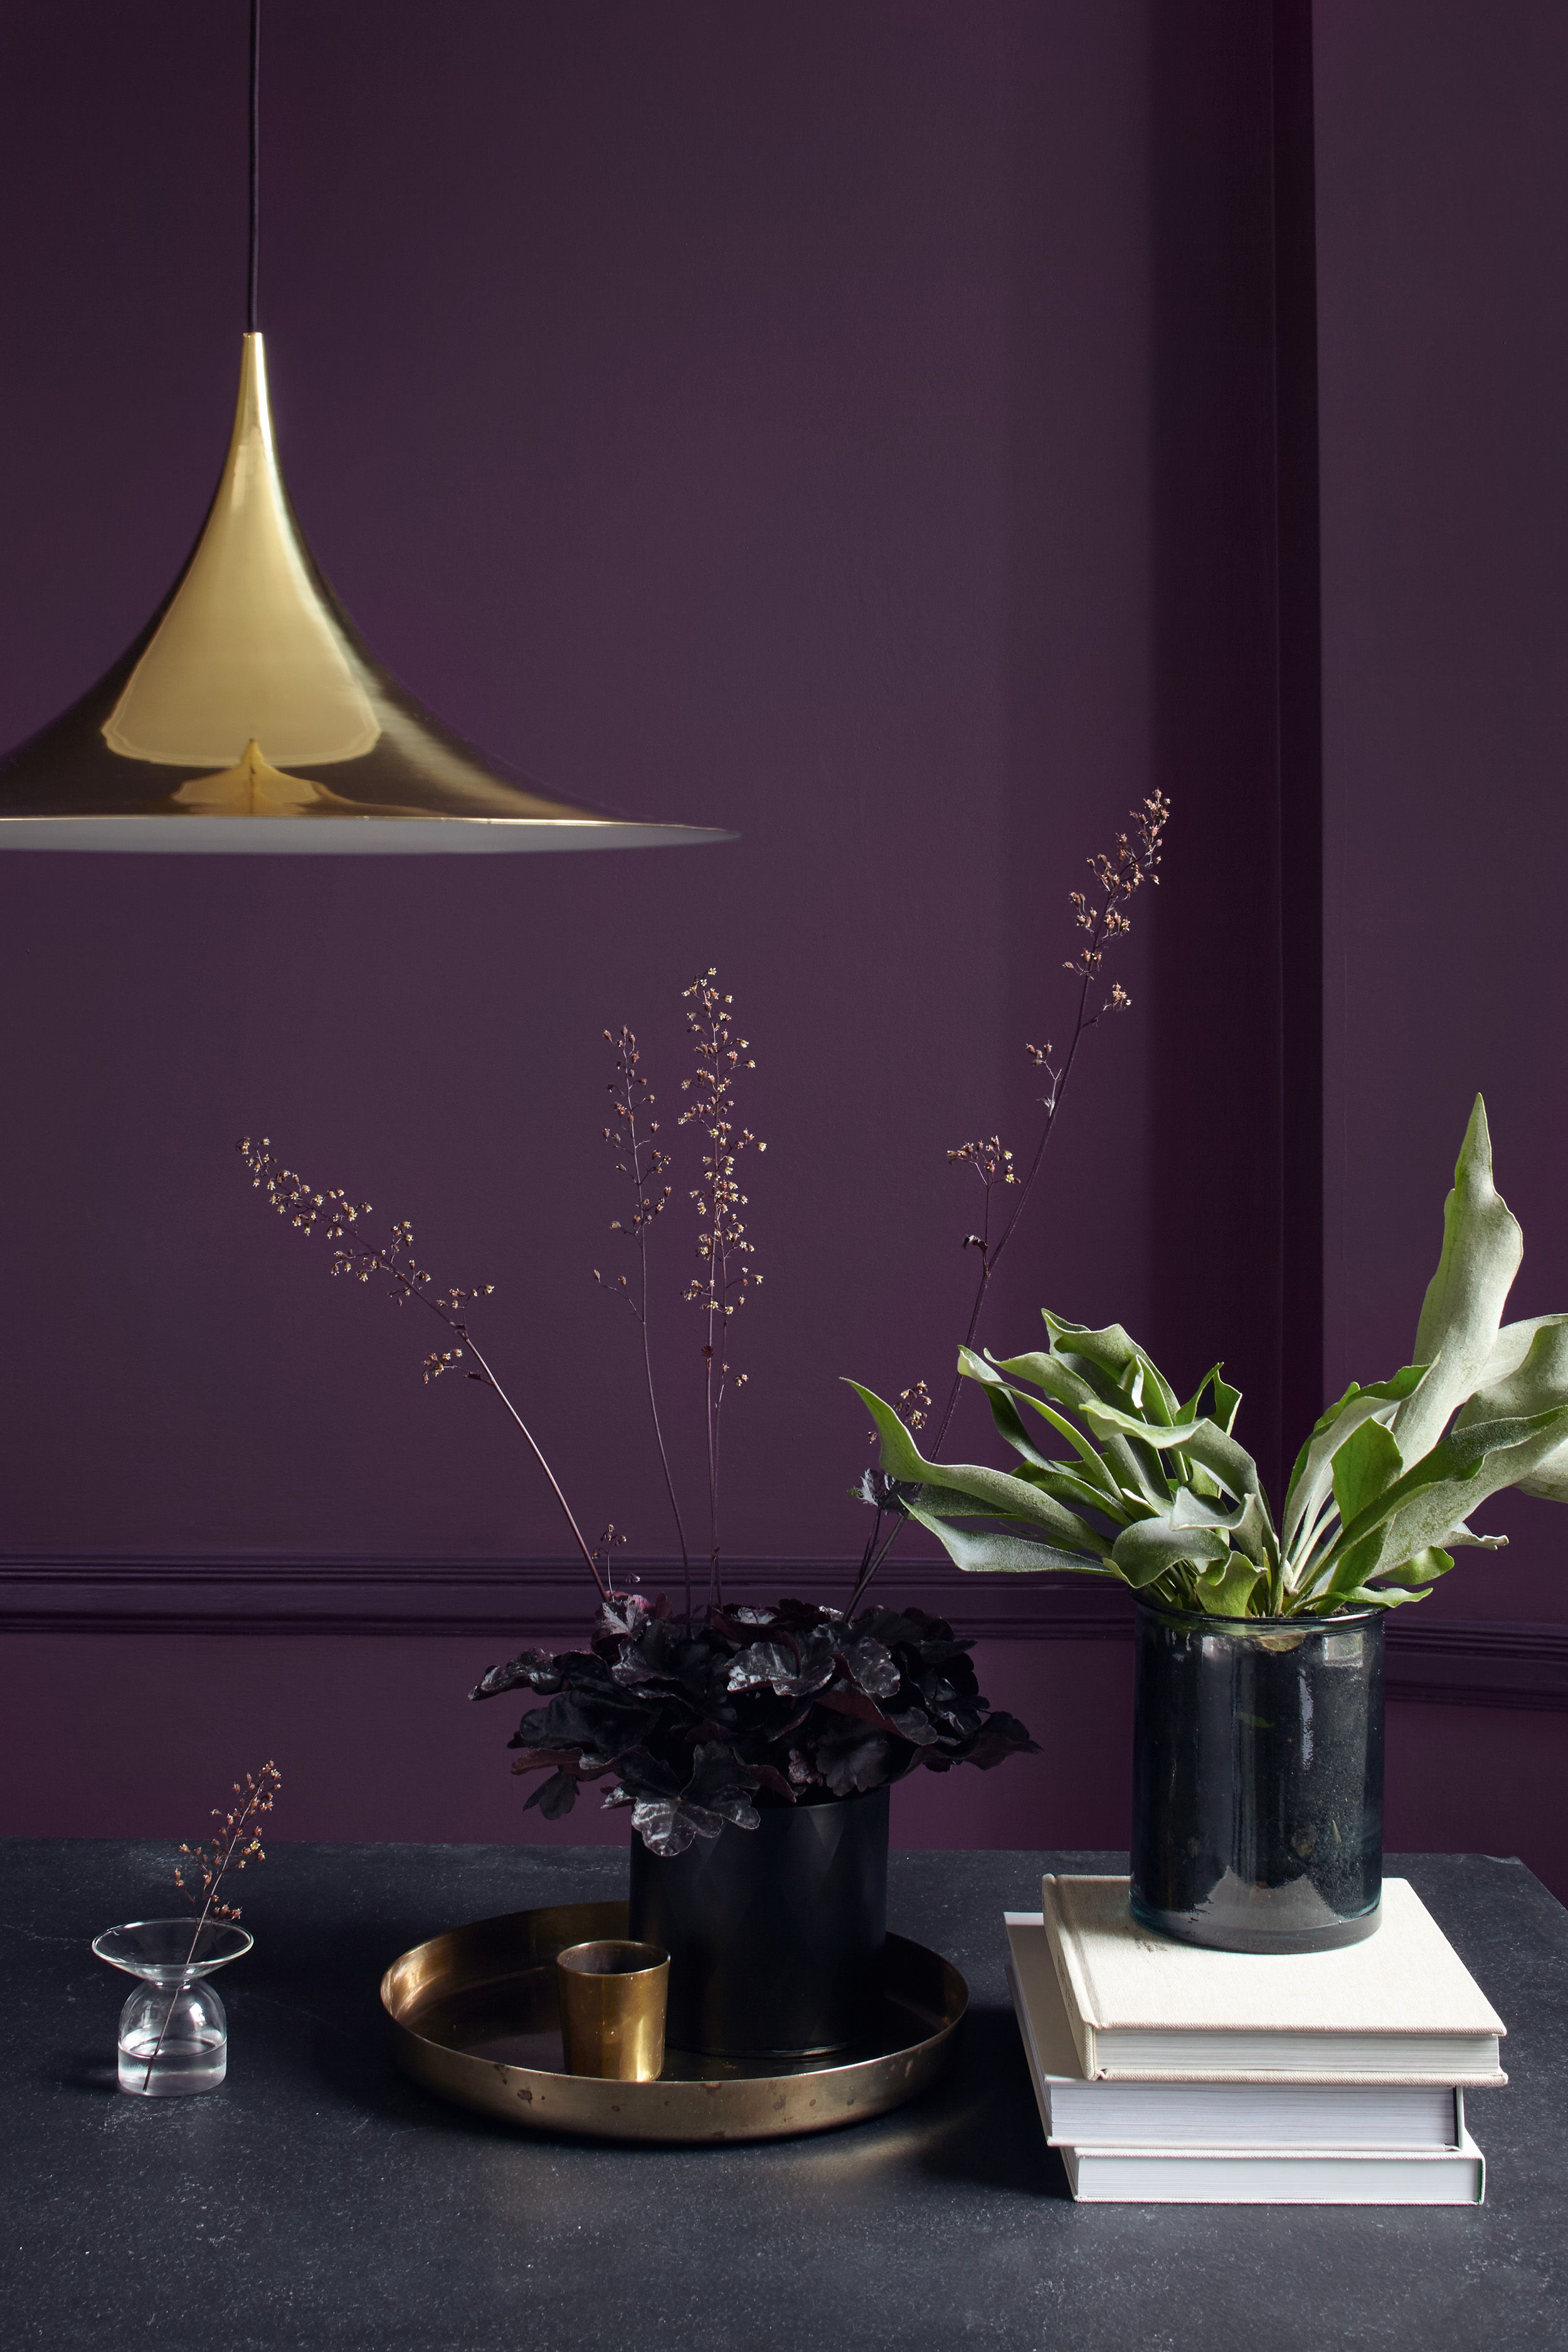 Find Interior Design Ideas For All The Rooms Of Your Home And Get Inspired By Some Of The 2018 Trend Room Wall Colors Purple Living Room Living Room Wall Color